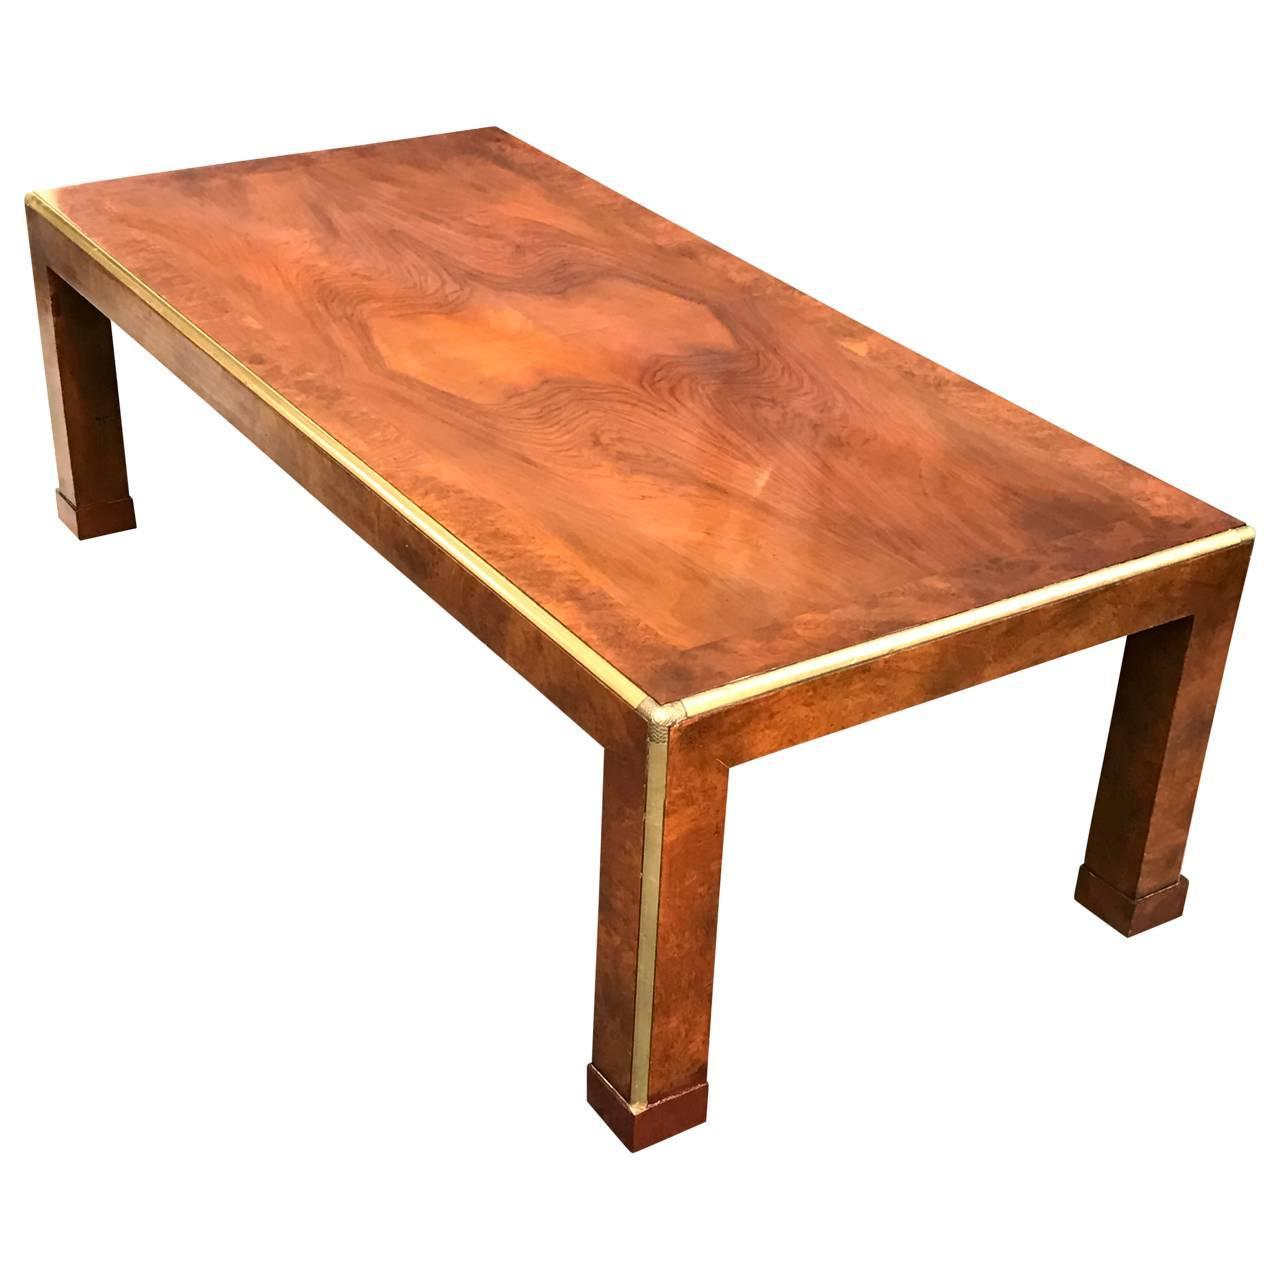 Rectangular coffee table by baker at 1stdibs Baker coffee table